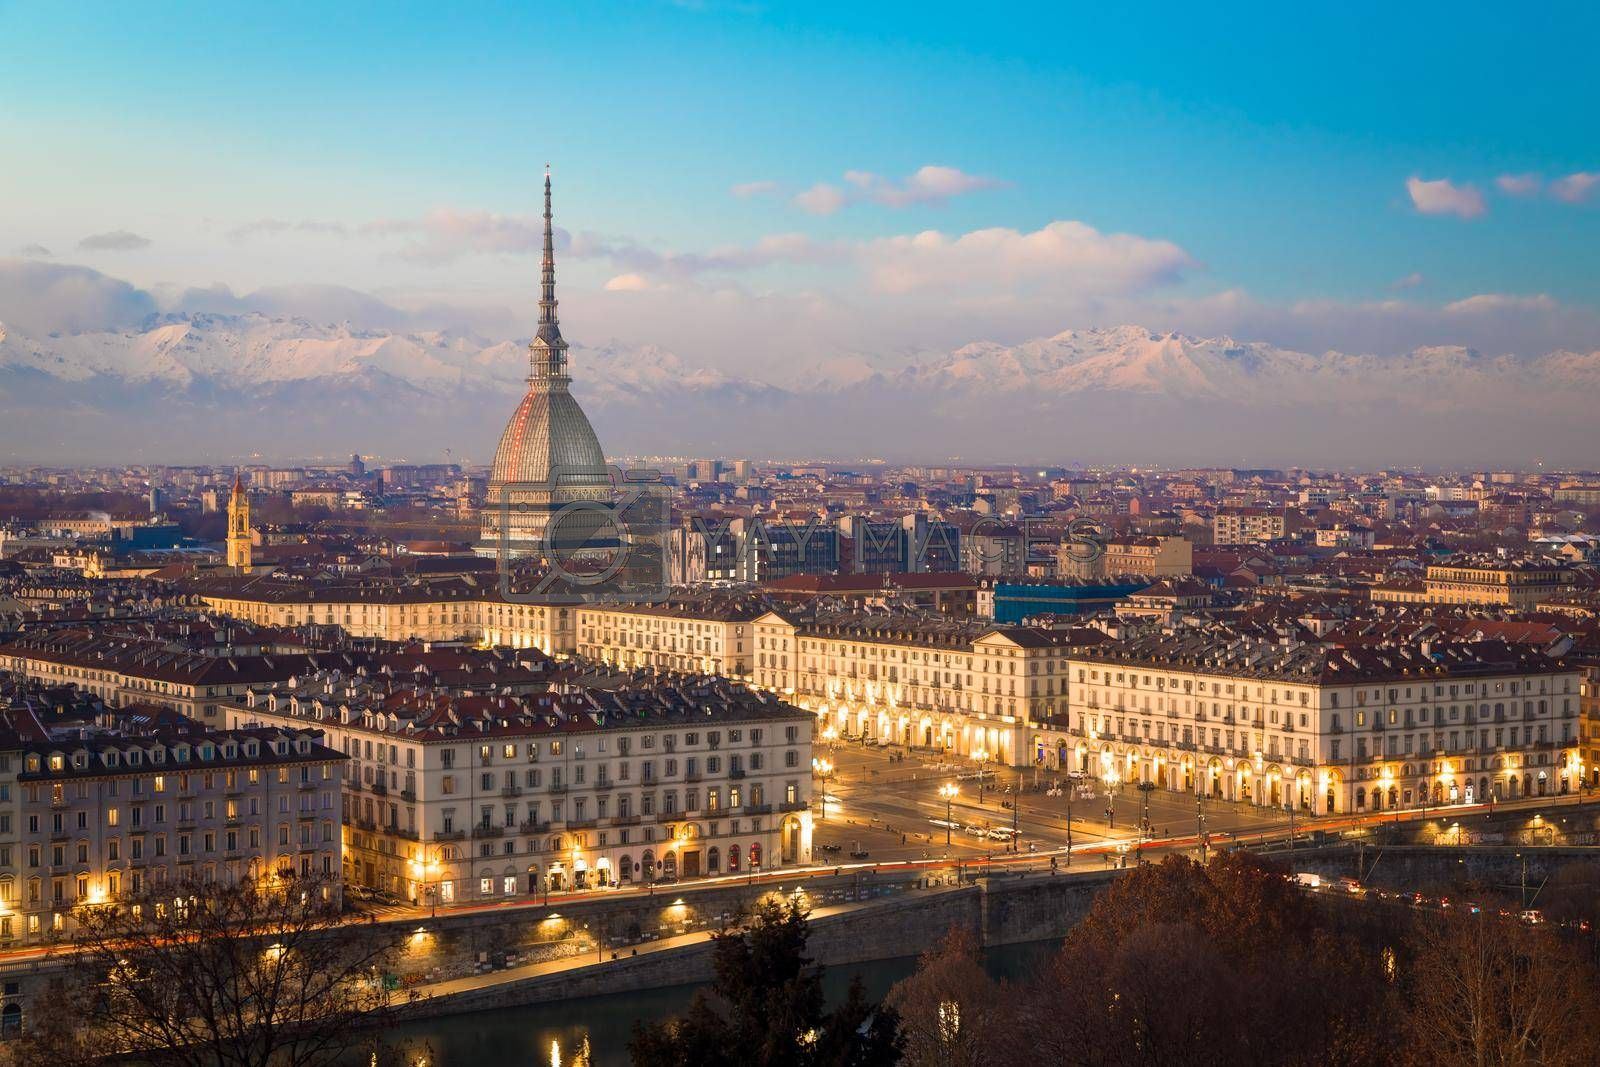 Royalty free image of Turin, Italy. Panorama from Monte dei Cappuccini (Cappuccini's Hill) at sunset with Alps mountains and Mole Antonelliana by Perseomedusa